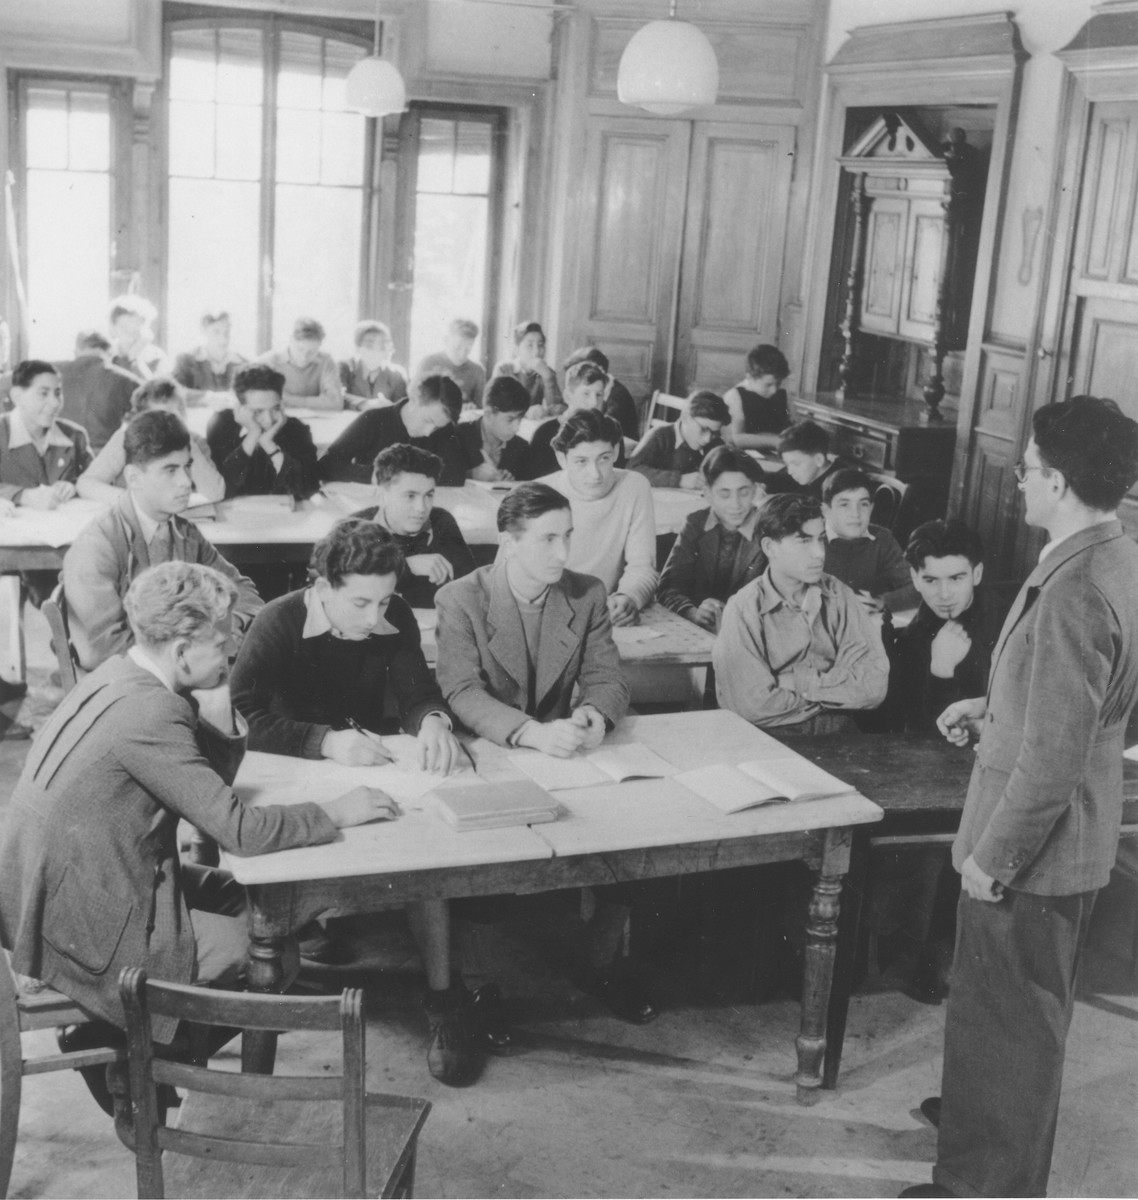 Isidor Bernstajn teaches a Yiddish class in Hôme de la Forêt children's home.  Among those pictured is Jacques Karpensztein (later Carpentier, b. May 29, 1929, d. December 23, 1989) in the second row, wearing a white sweater.